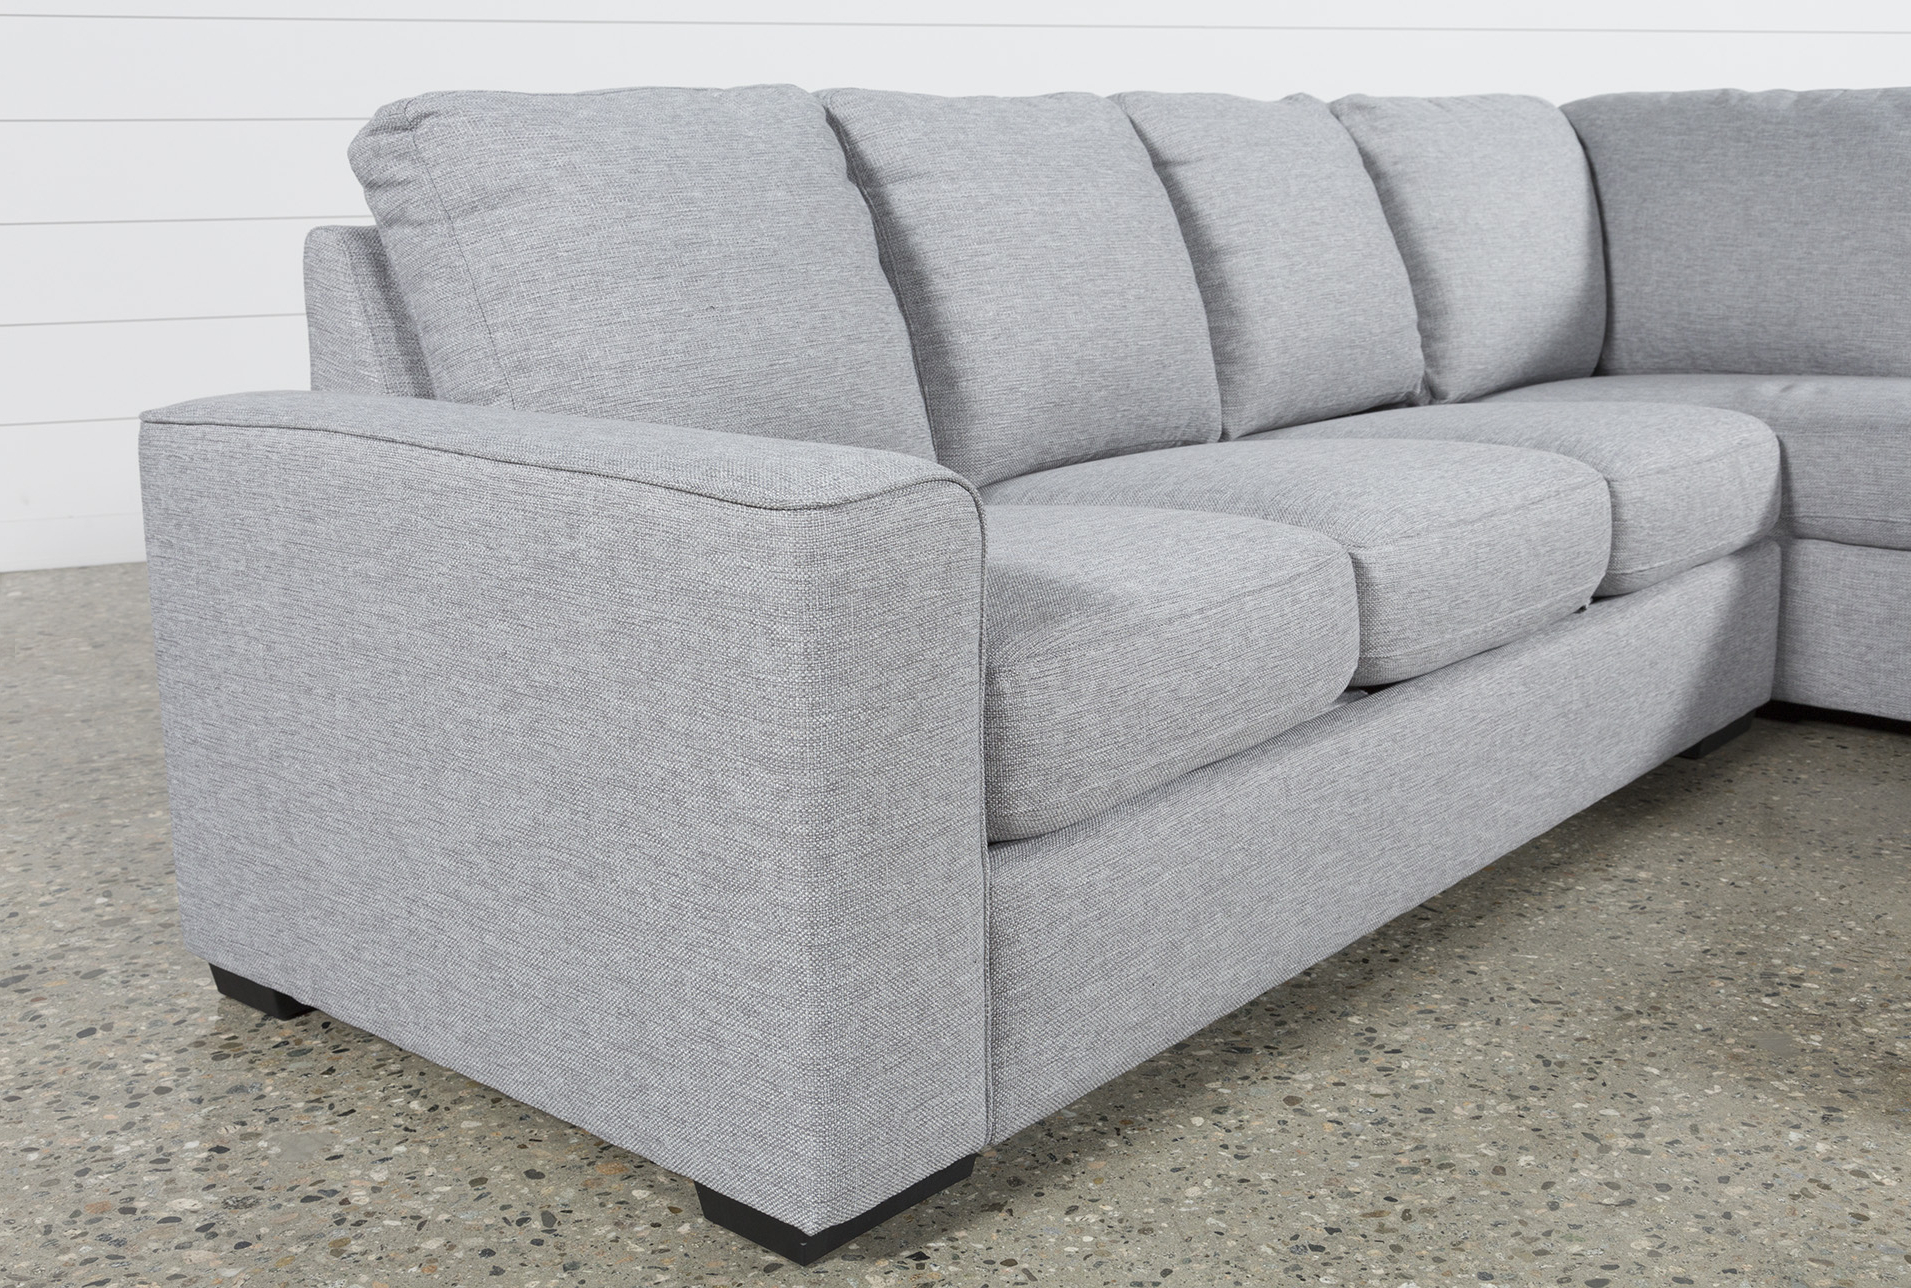 Arrowmask 2 Piece Sectionals With Raf Chaise Throughout Most Popular Lucy Grey 2 Piece Sectional W/laf Chaise (View 10 of 20)